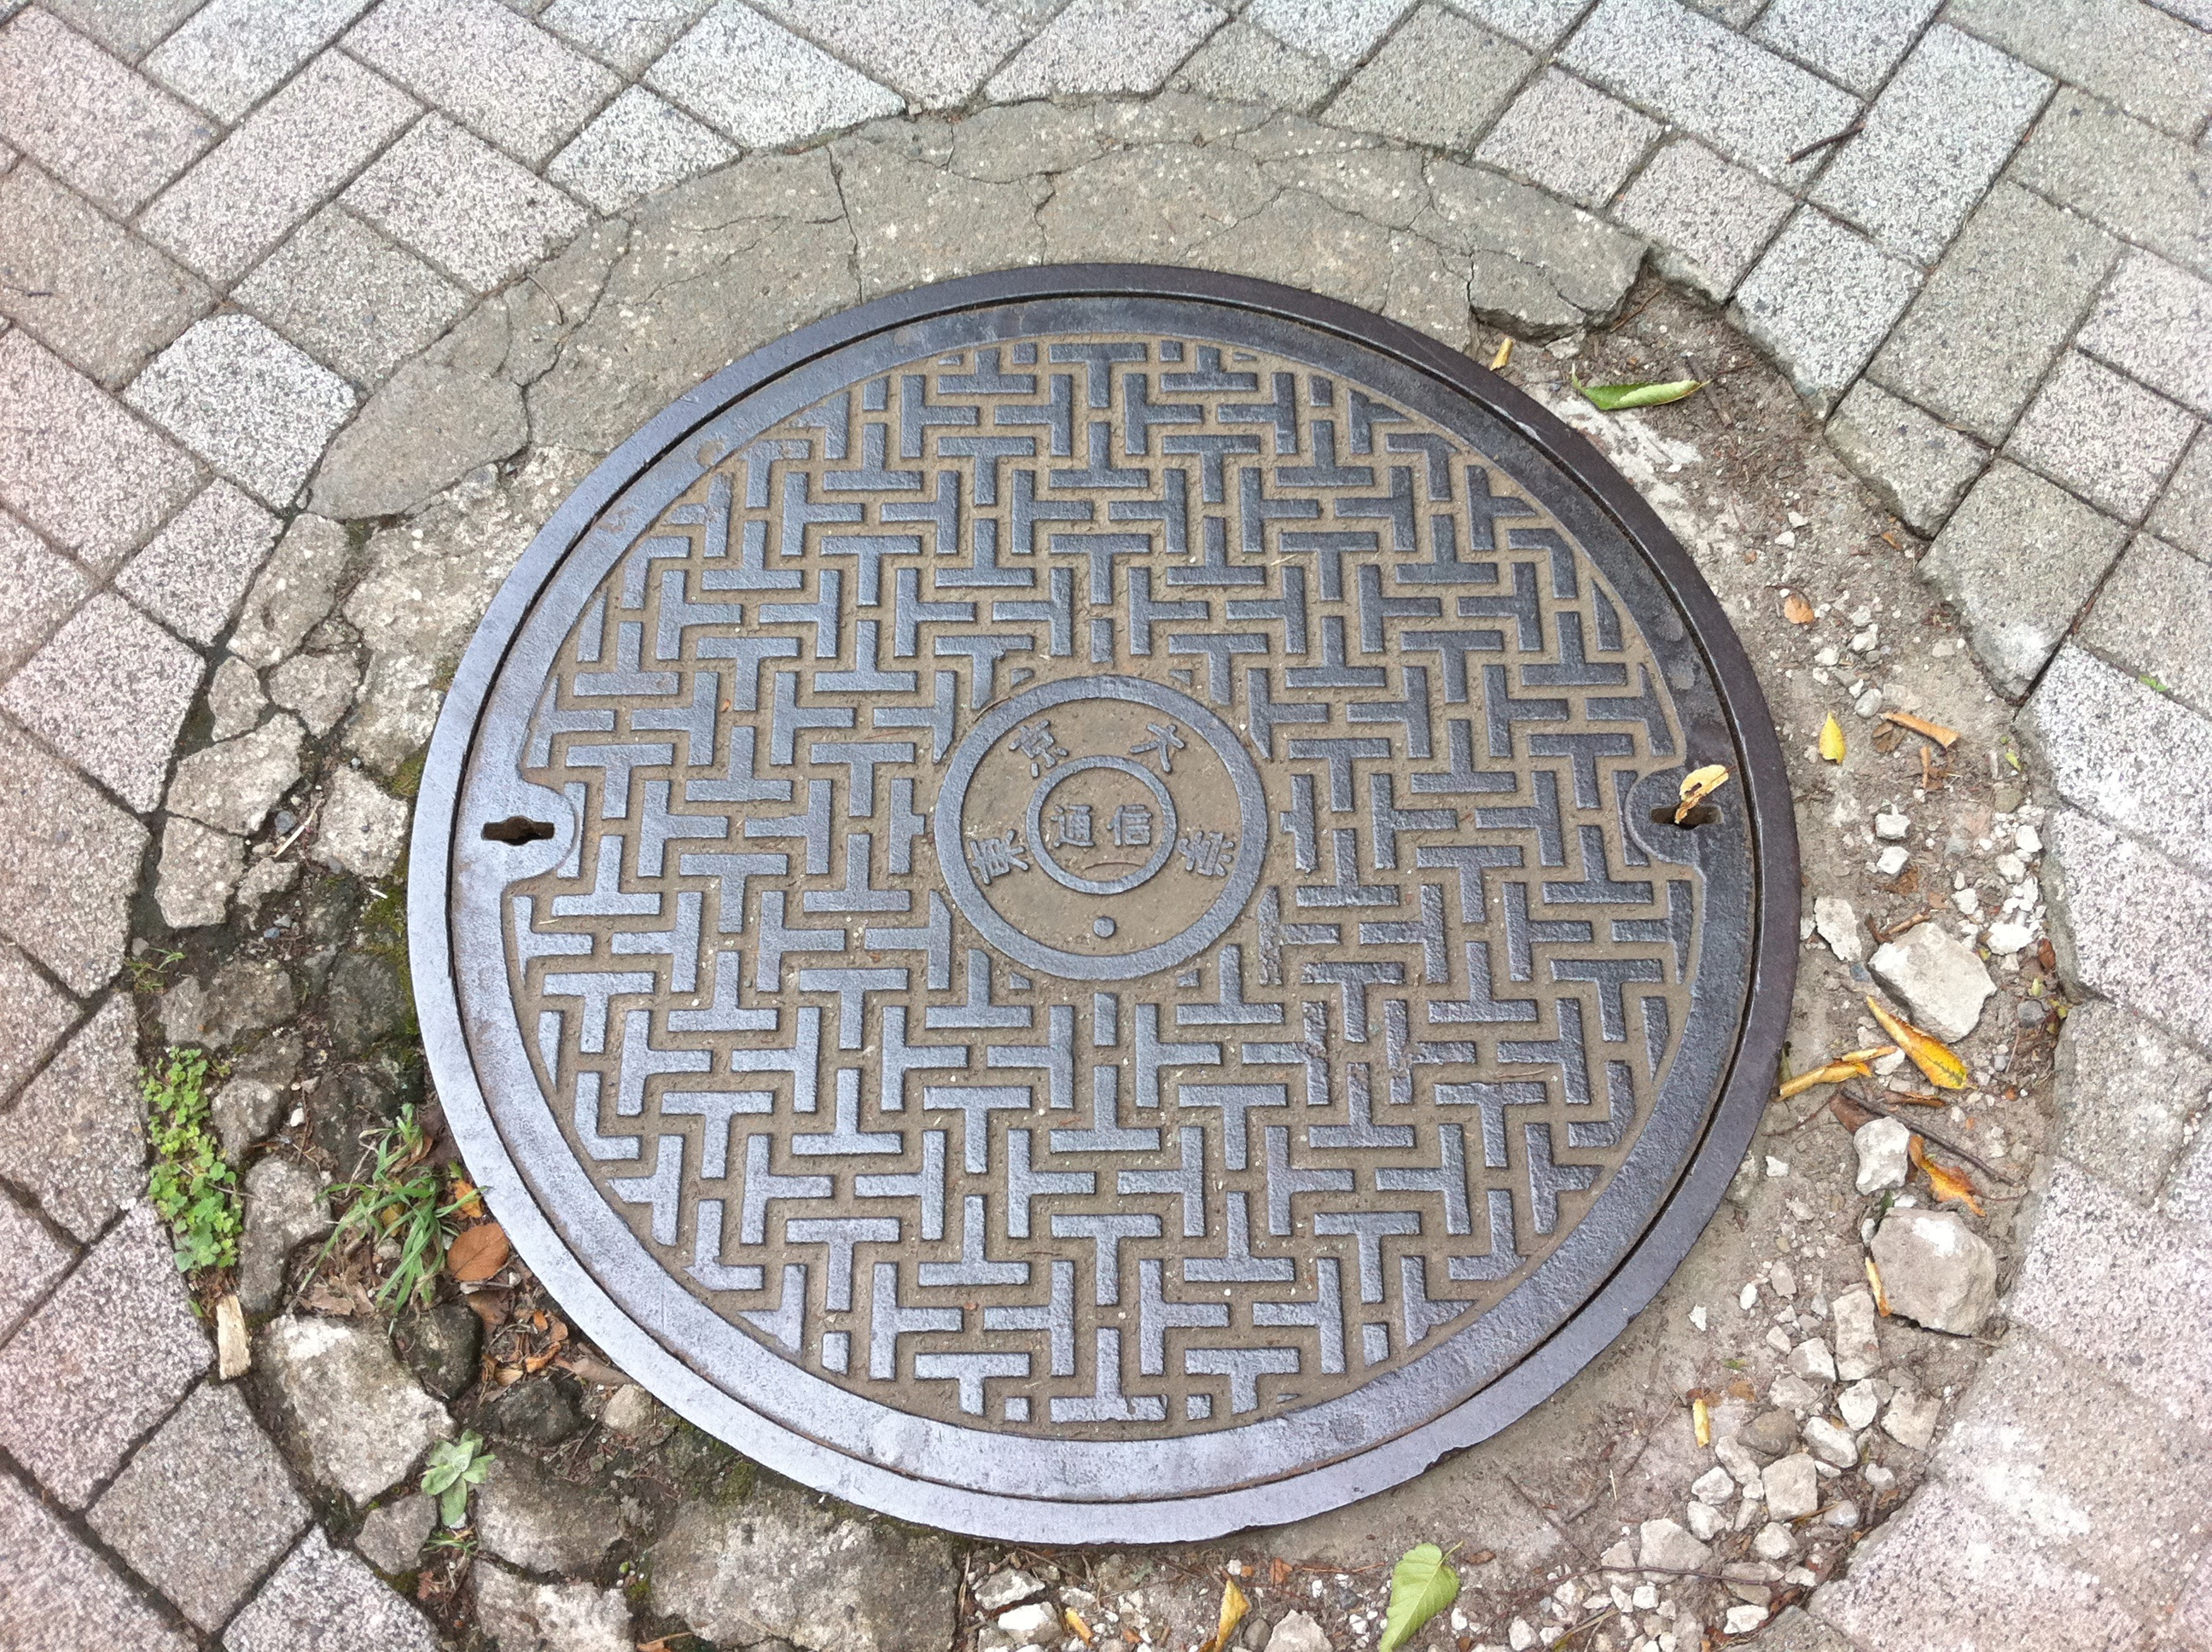 Manhole at The University of Tokyo